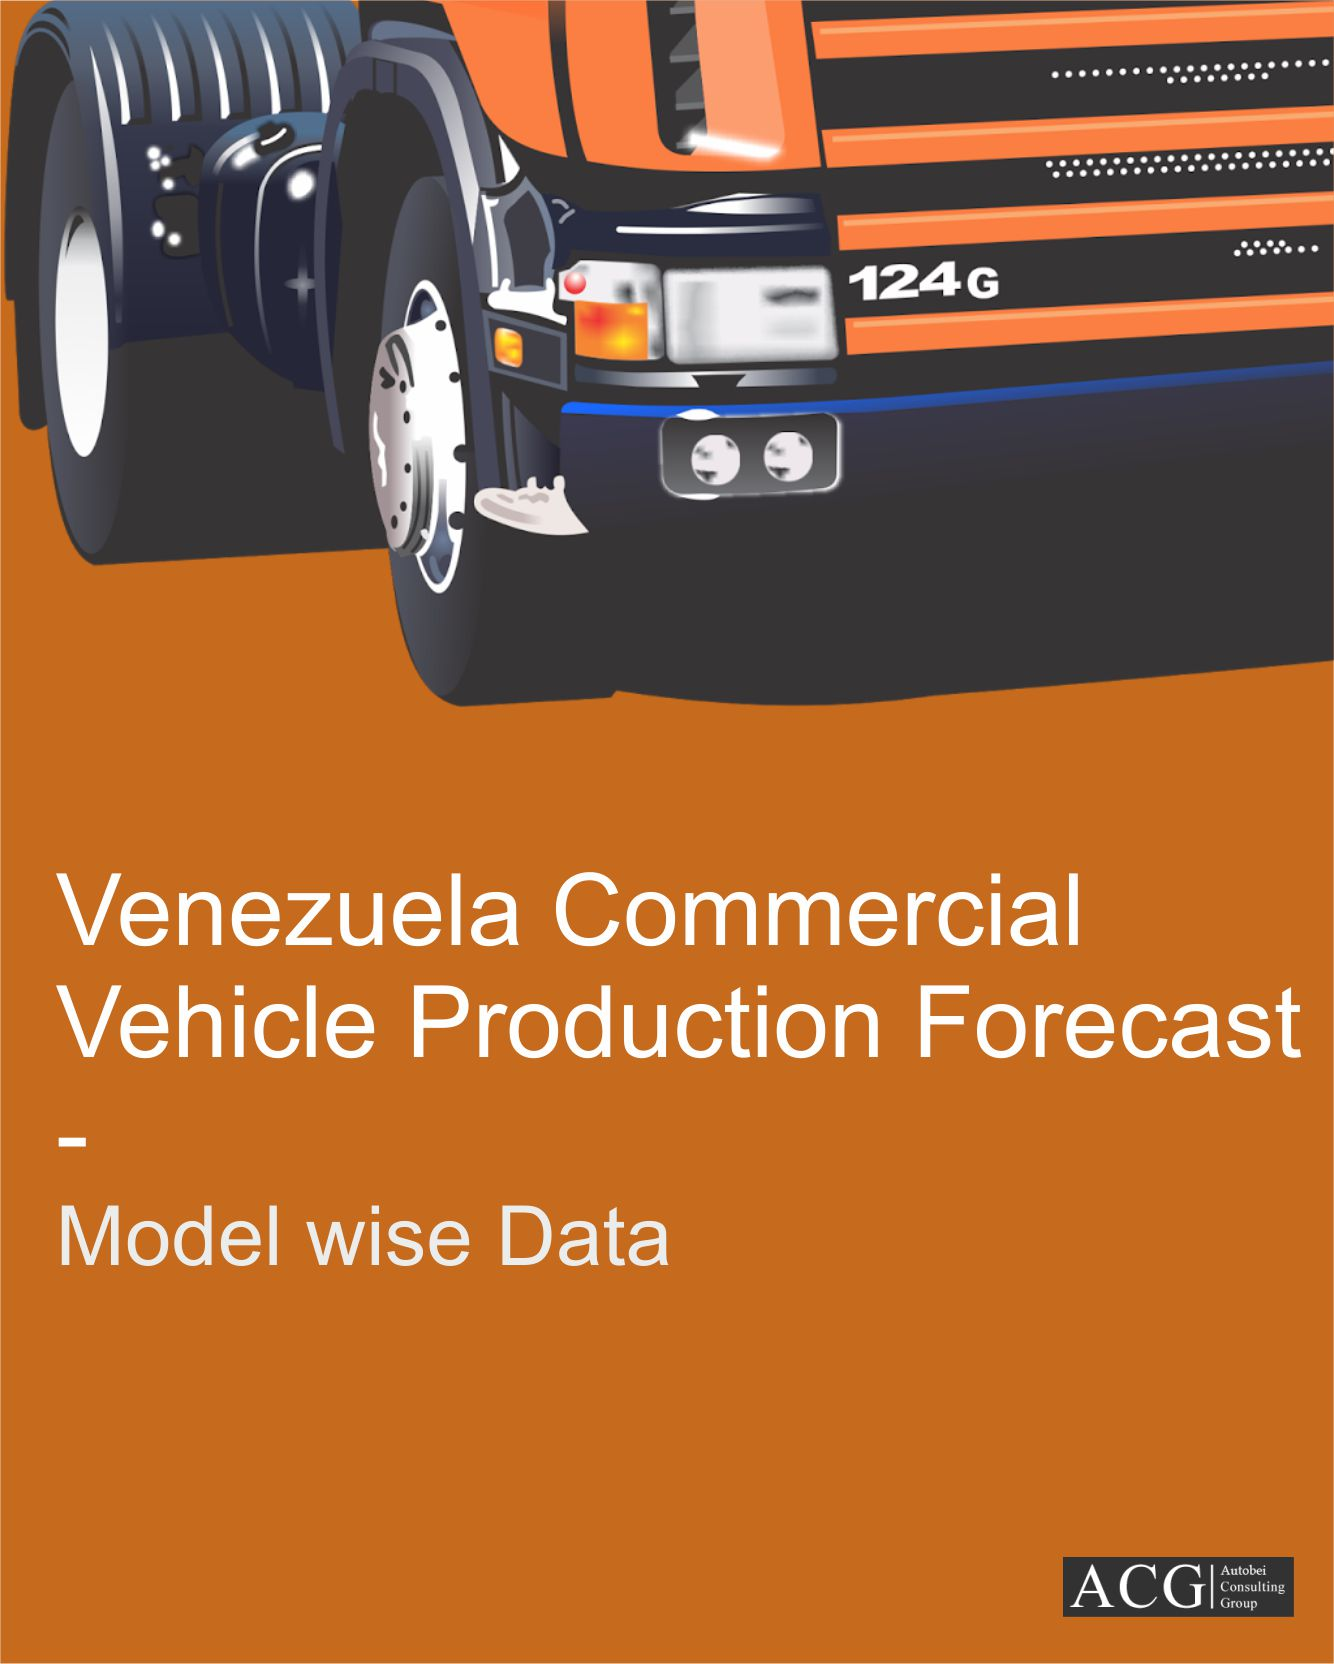 Venezuela Model wise Commercial Vehicle Production Forecast